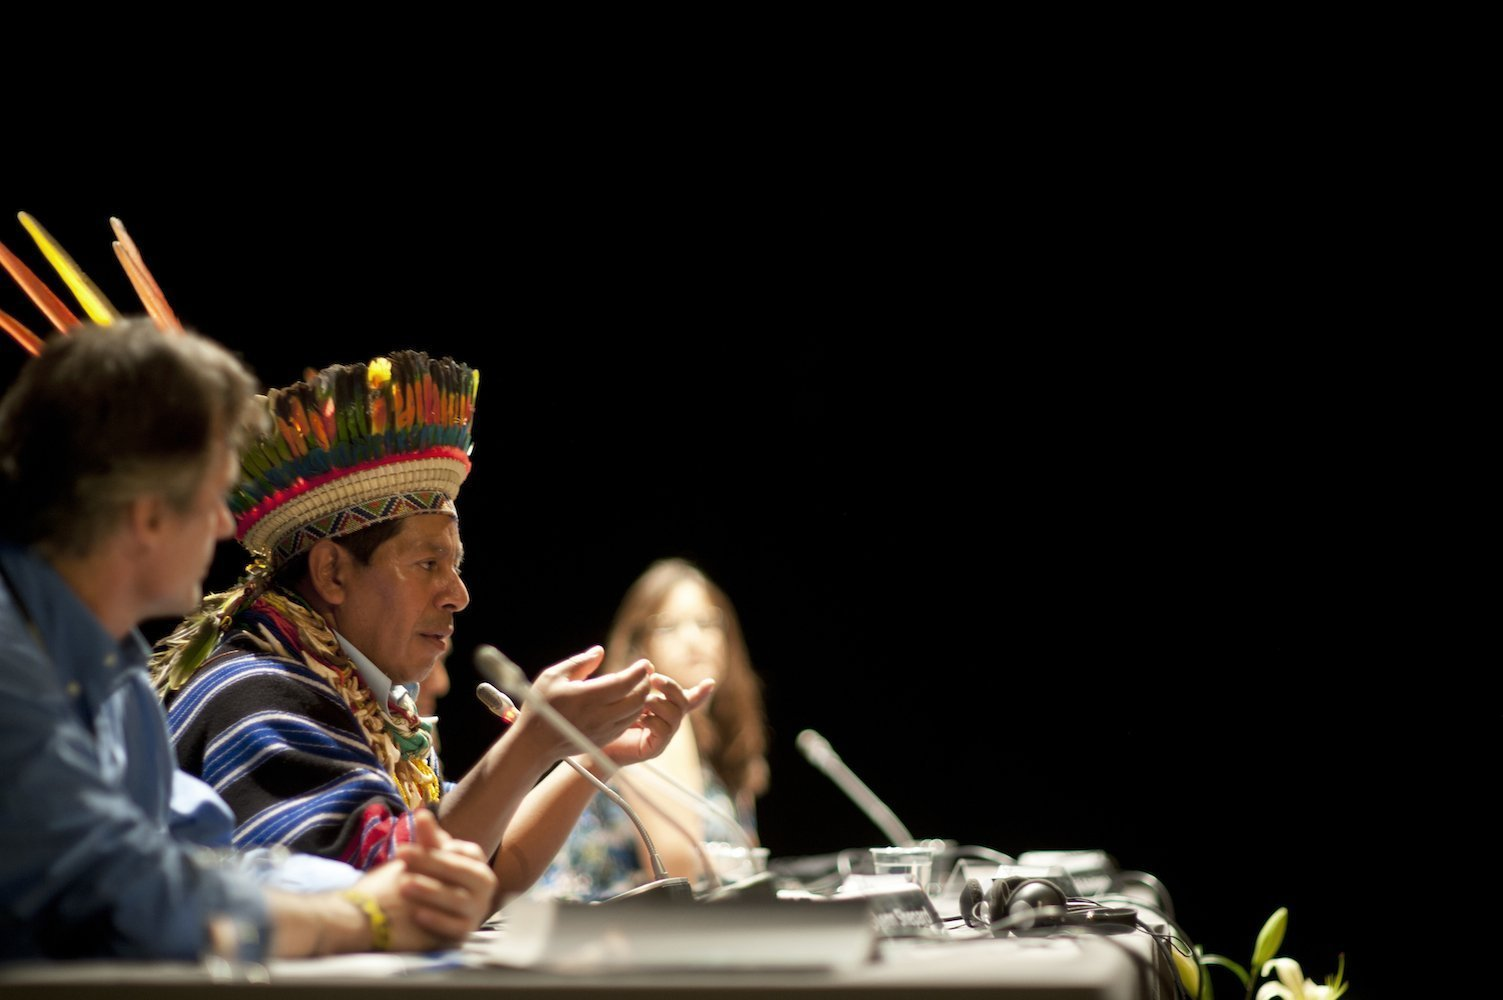 Imagine You Are a Judge: Ayahuasca in the Courtroom